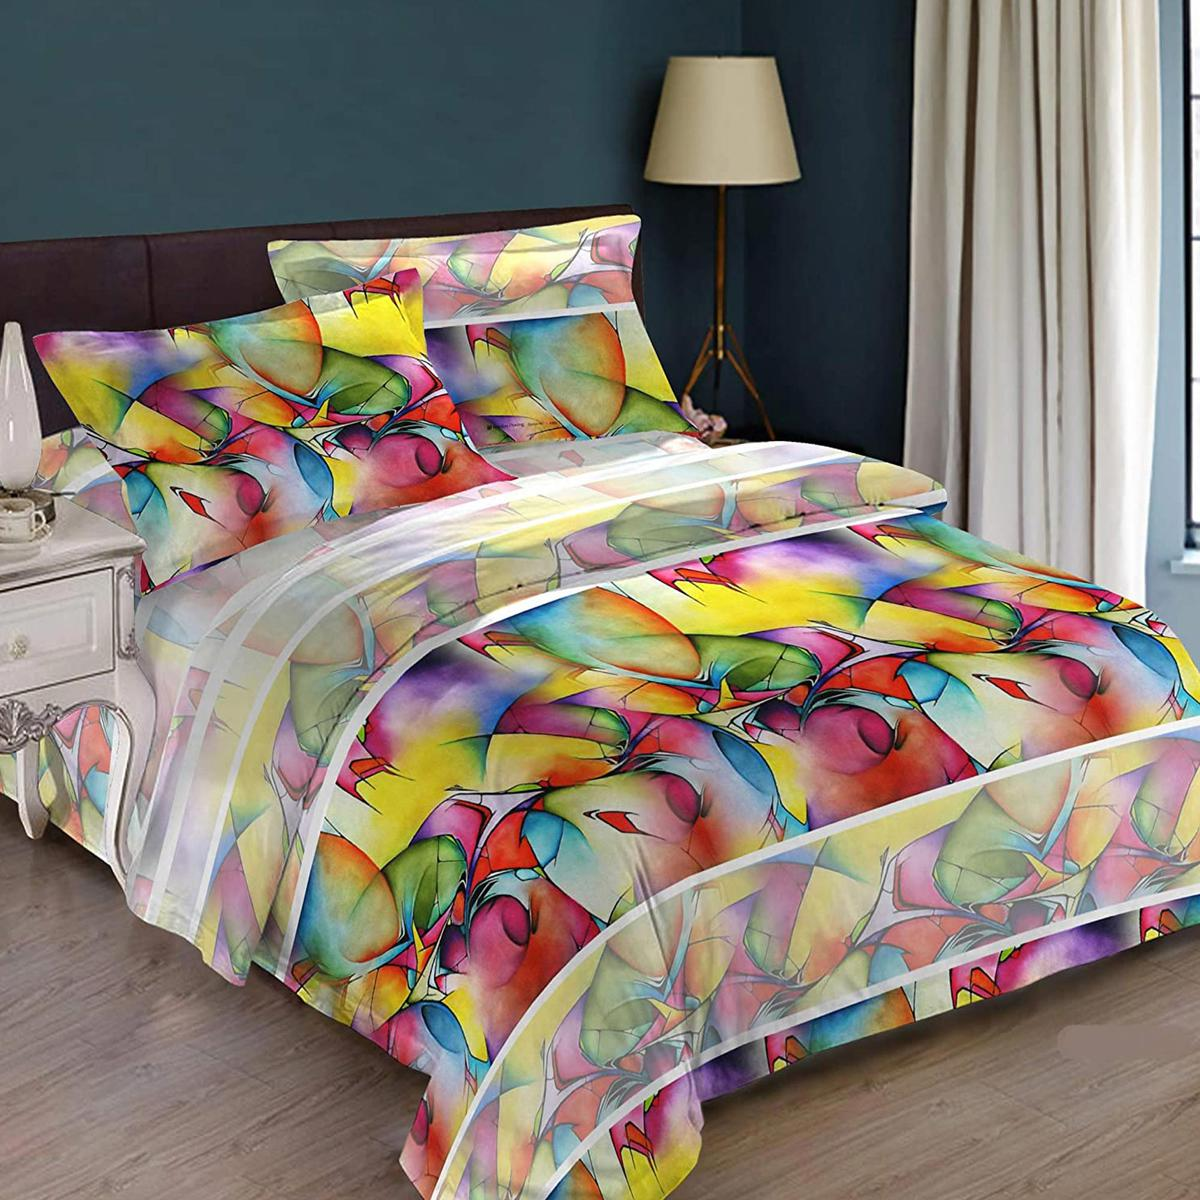 Bombay Dyeing Multi Colored Grandiose 100% Cotton One Queen Size Bedsheet with 2 Pillow Covers